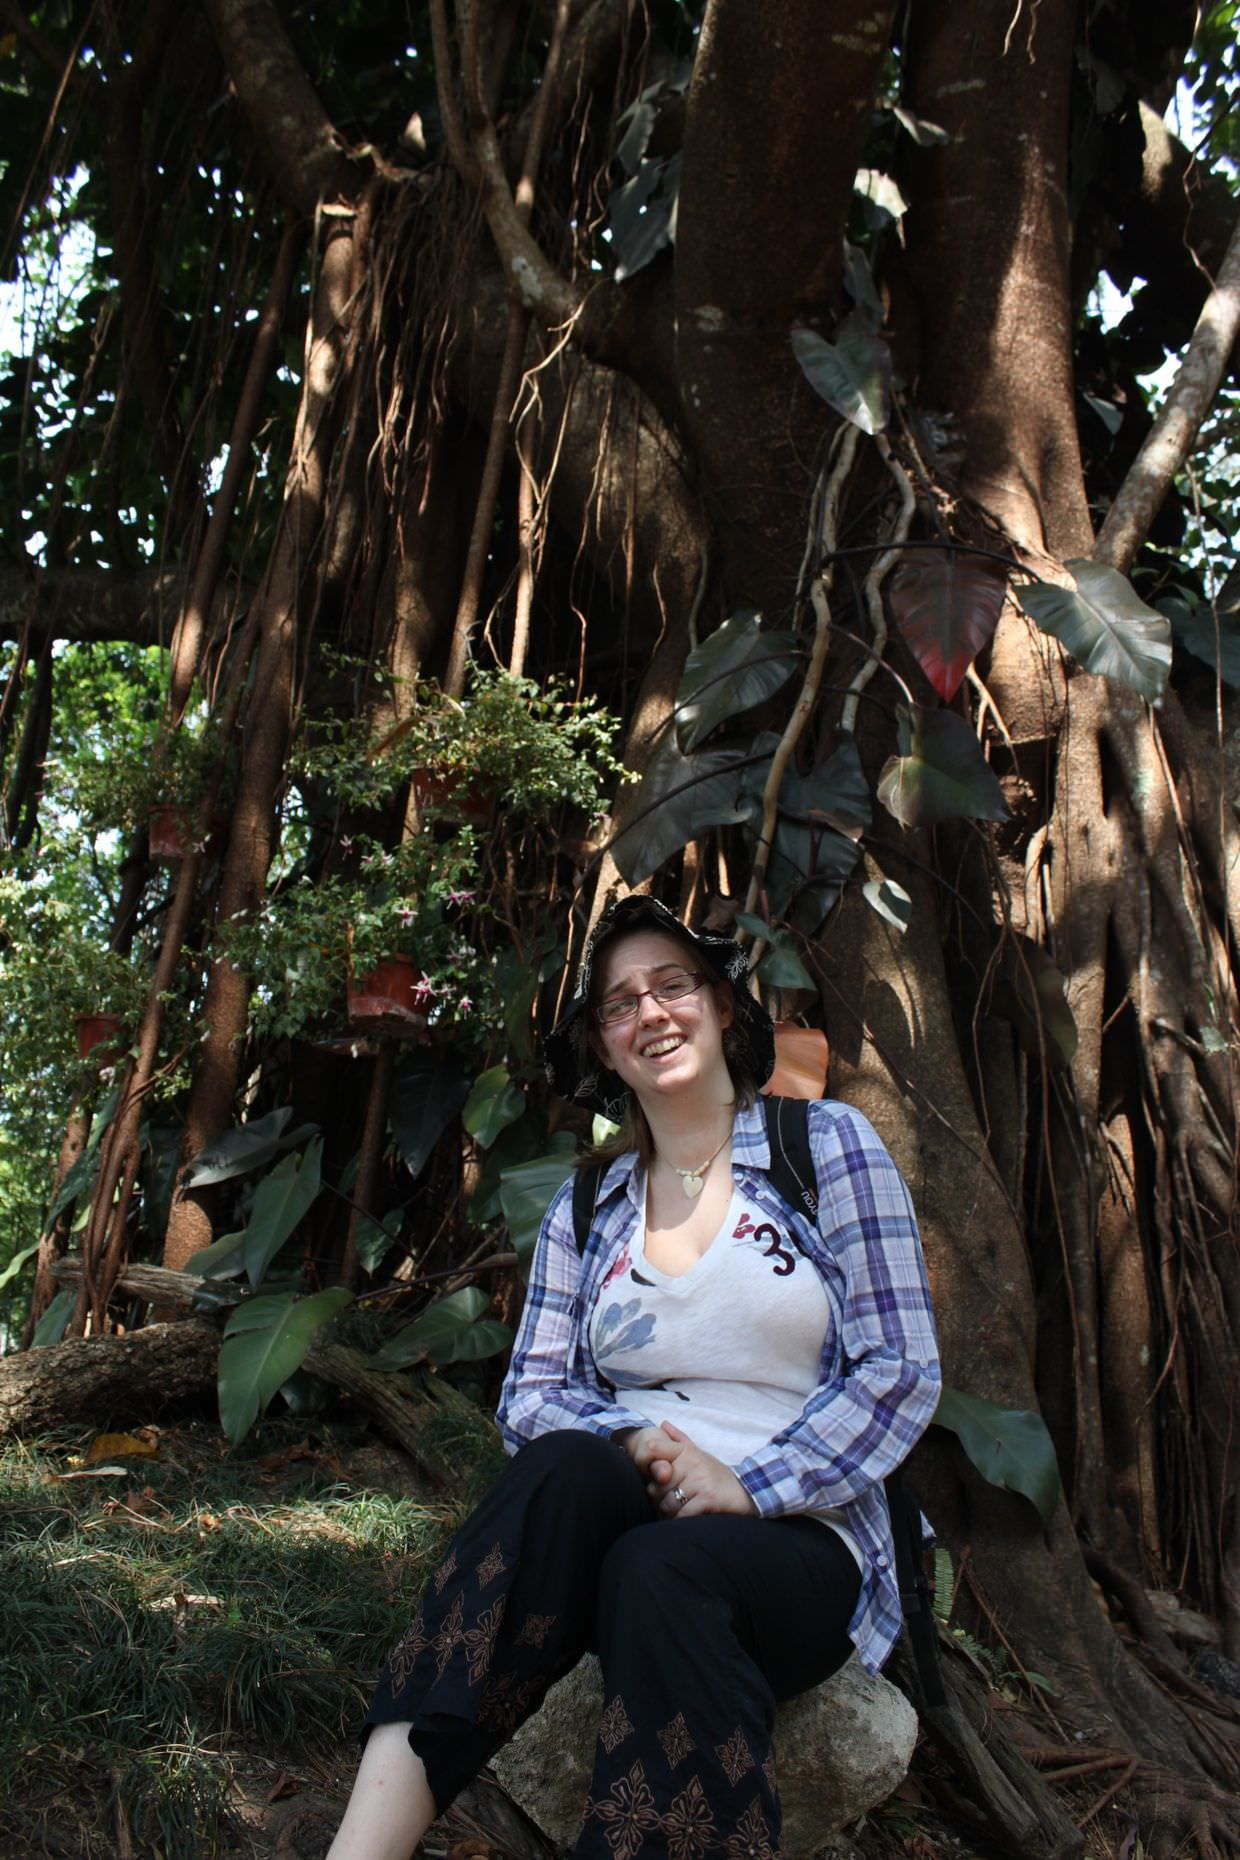 Sam under a Banyan tree